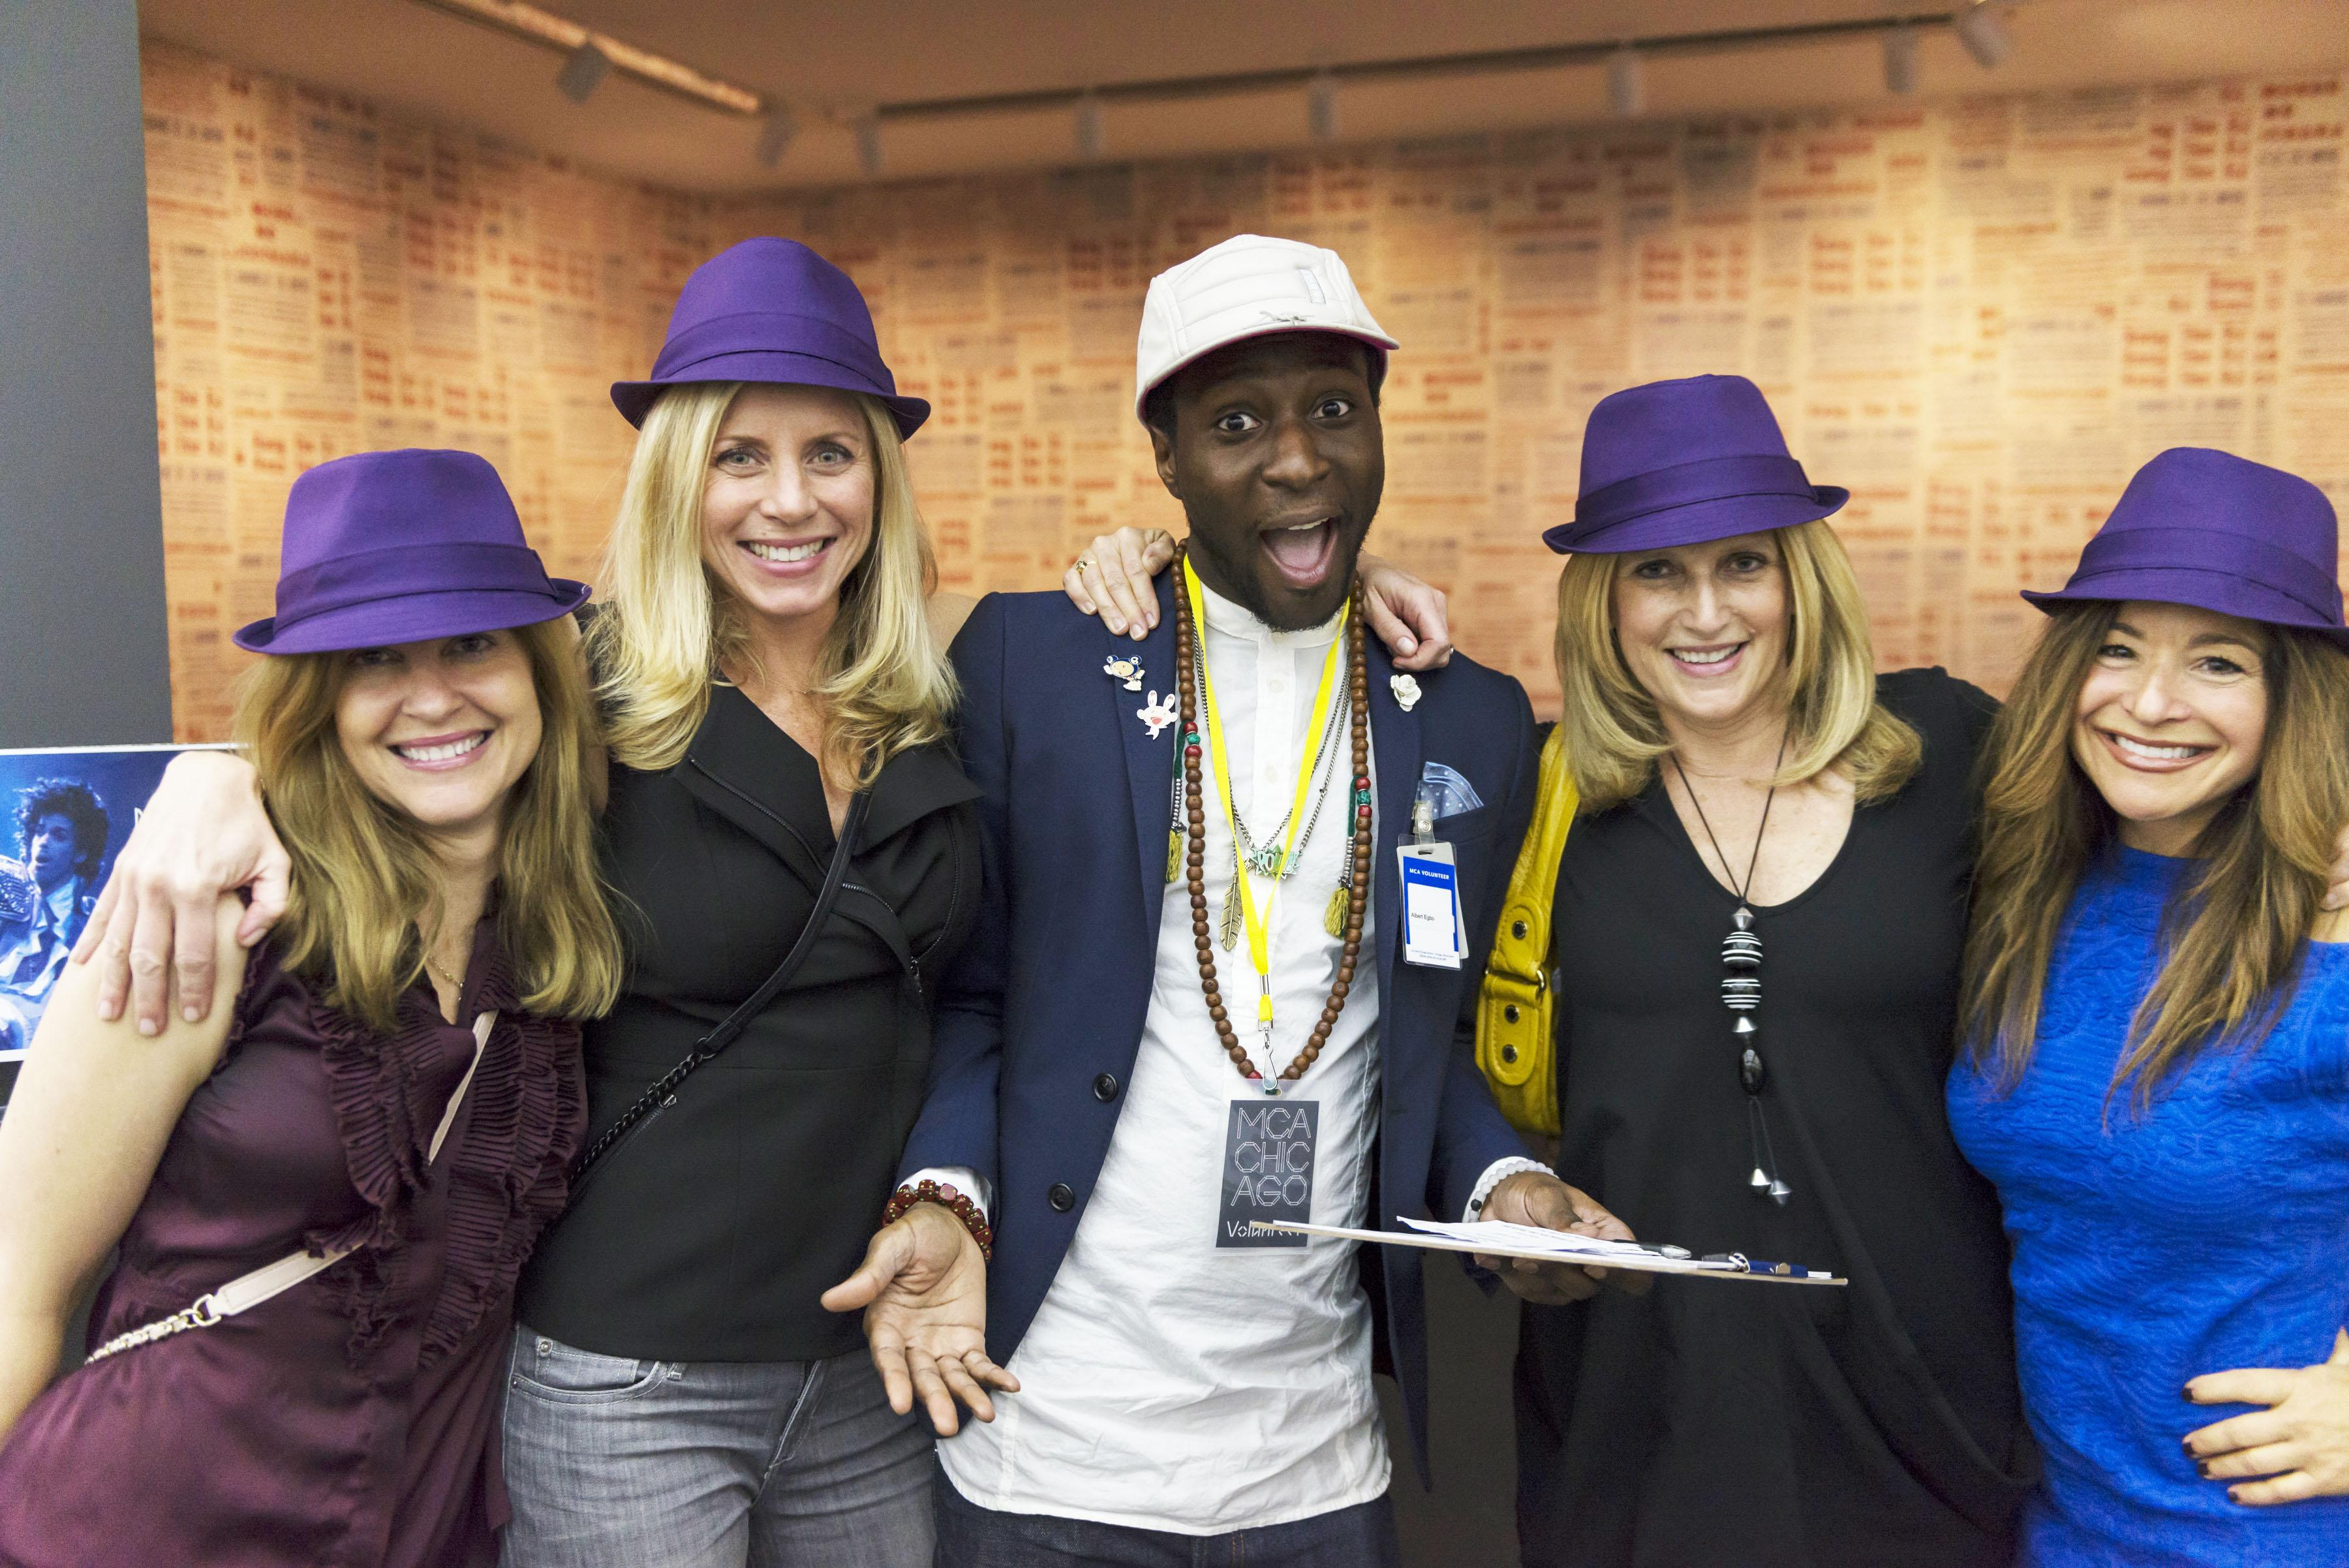 A group of five people pose, all but one wearing purple fedoras.